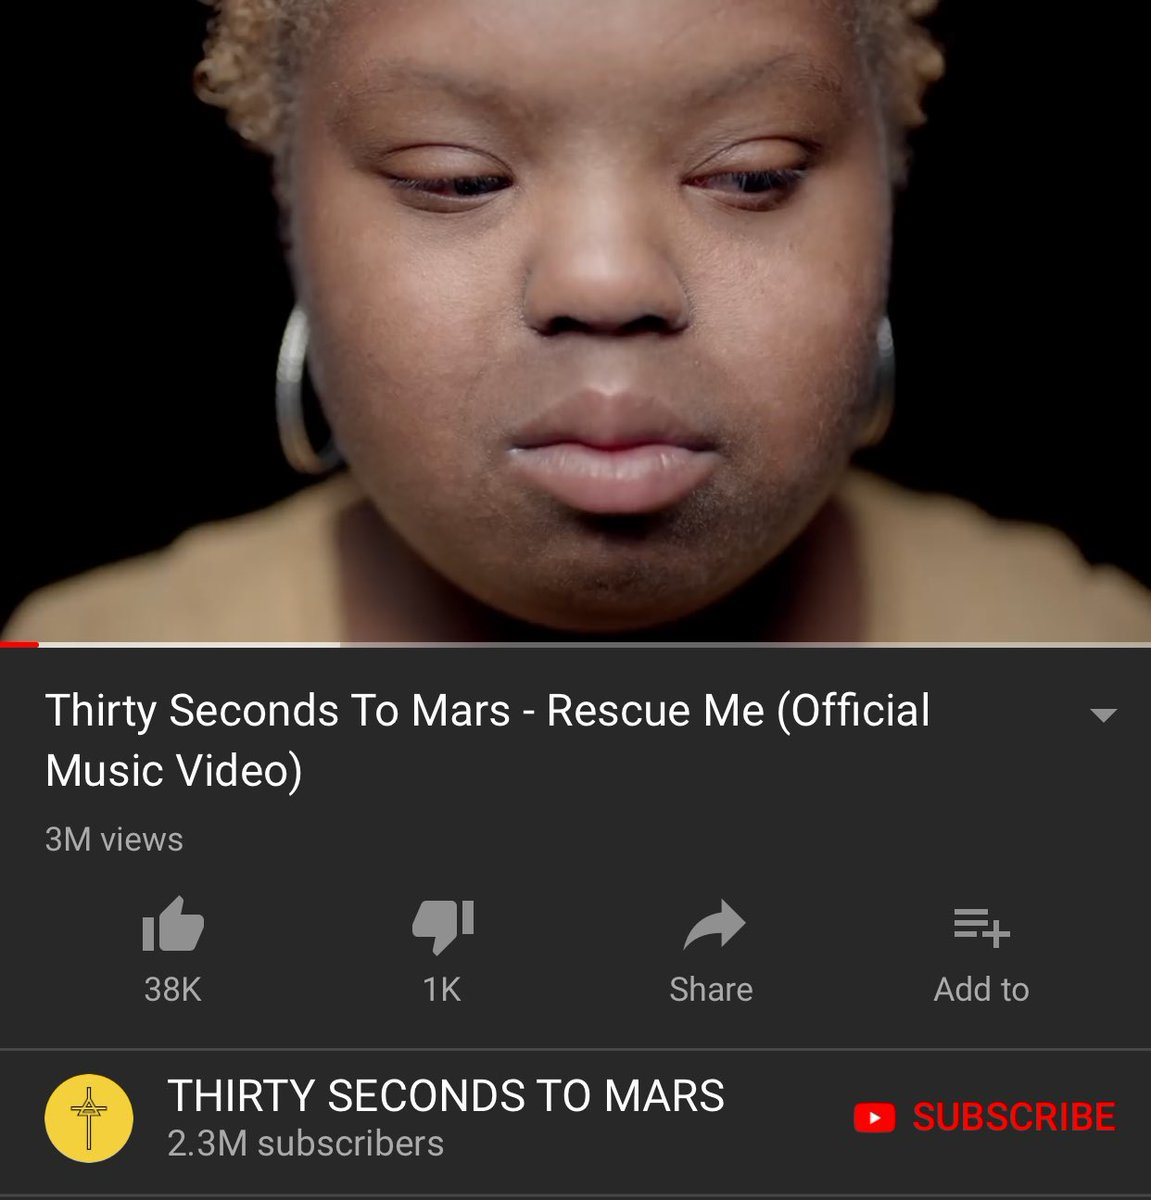 RT @SyaidaRahman: Its already 3M views on YouTube! ⁦@JaredLeto⁩ ⁦@30SECONDSTOMARS⁩! Congratulations! https://t.co/peS2vlOhJN